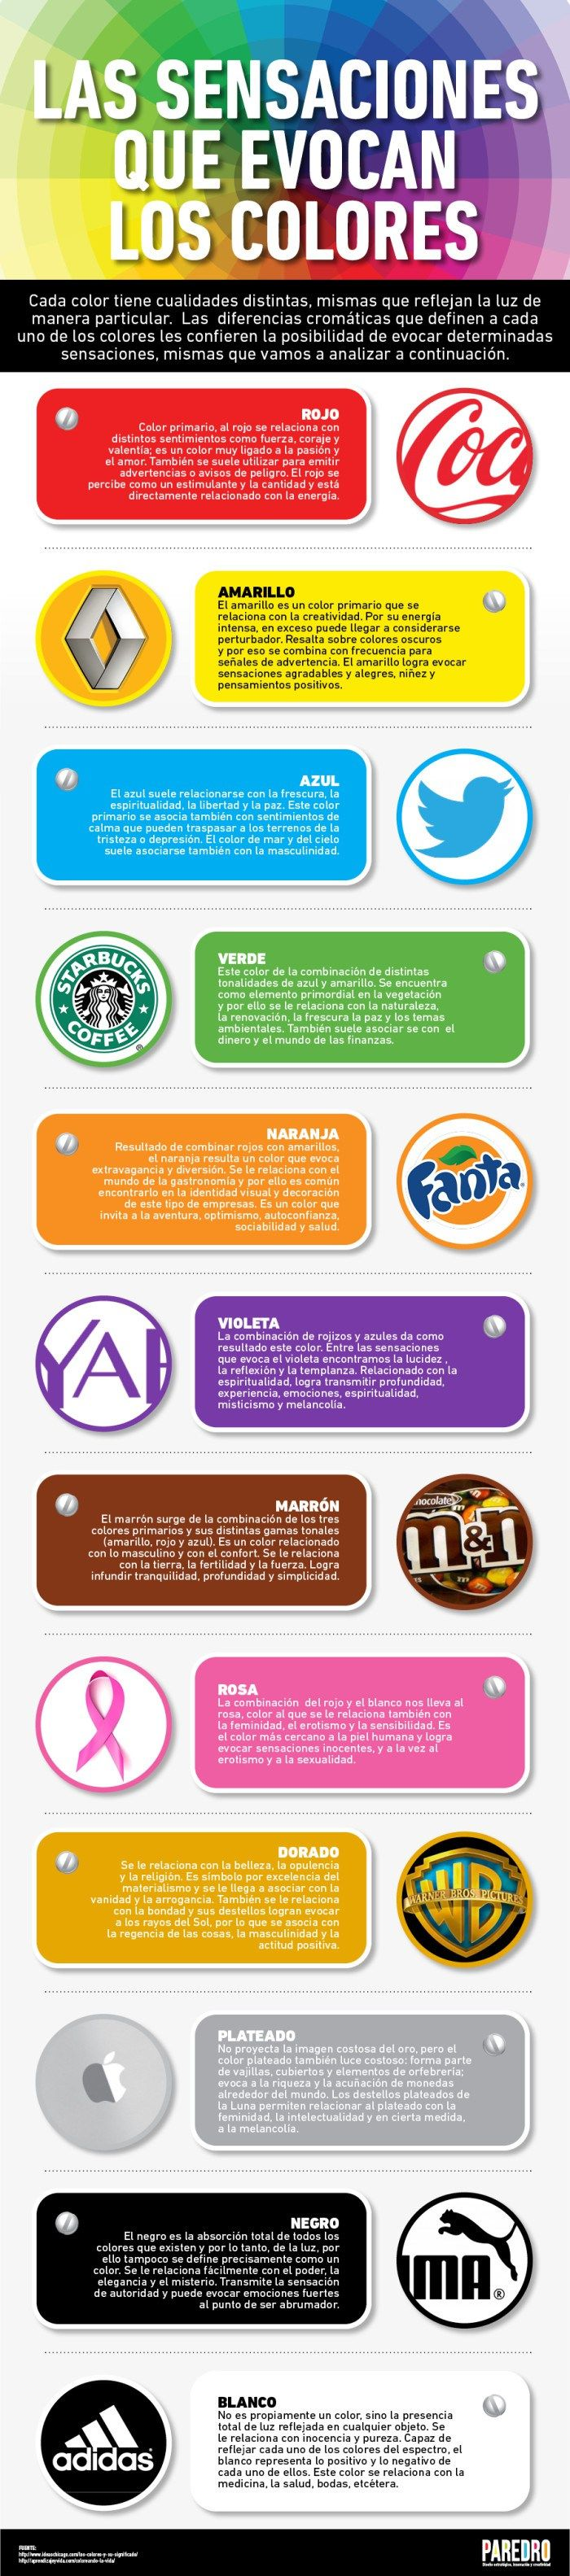 LAS SENSACIONES QUE EVOCAN LOS COLORES #INFOGRAFIA #INFOGRAPHIC #DESIGN #MARKETING